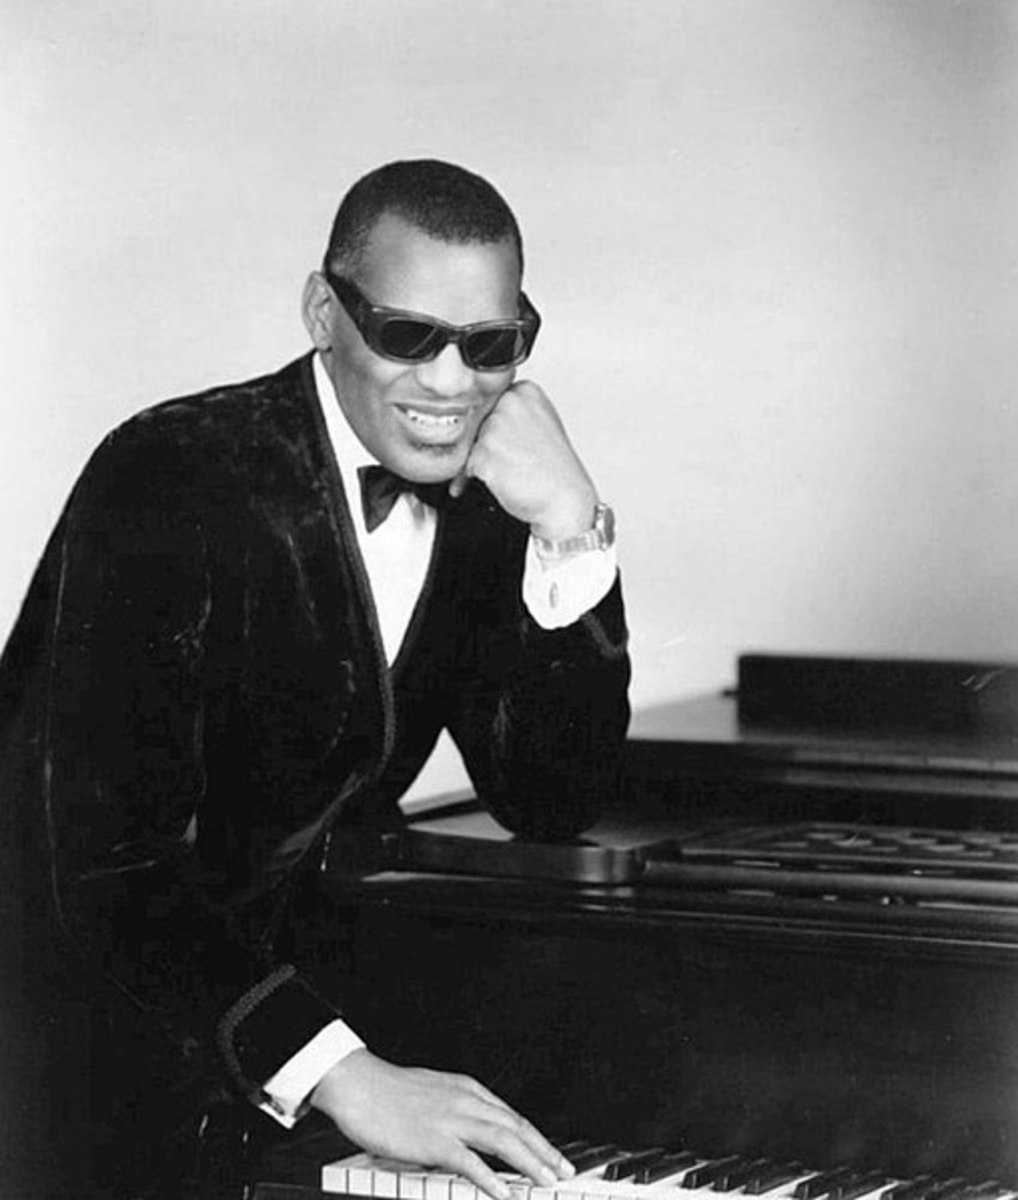 soul-music-features-origins-and-the-greatest-artists-of-all-time